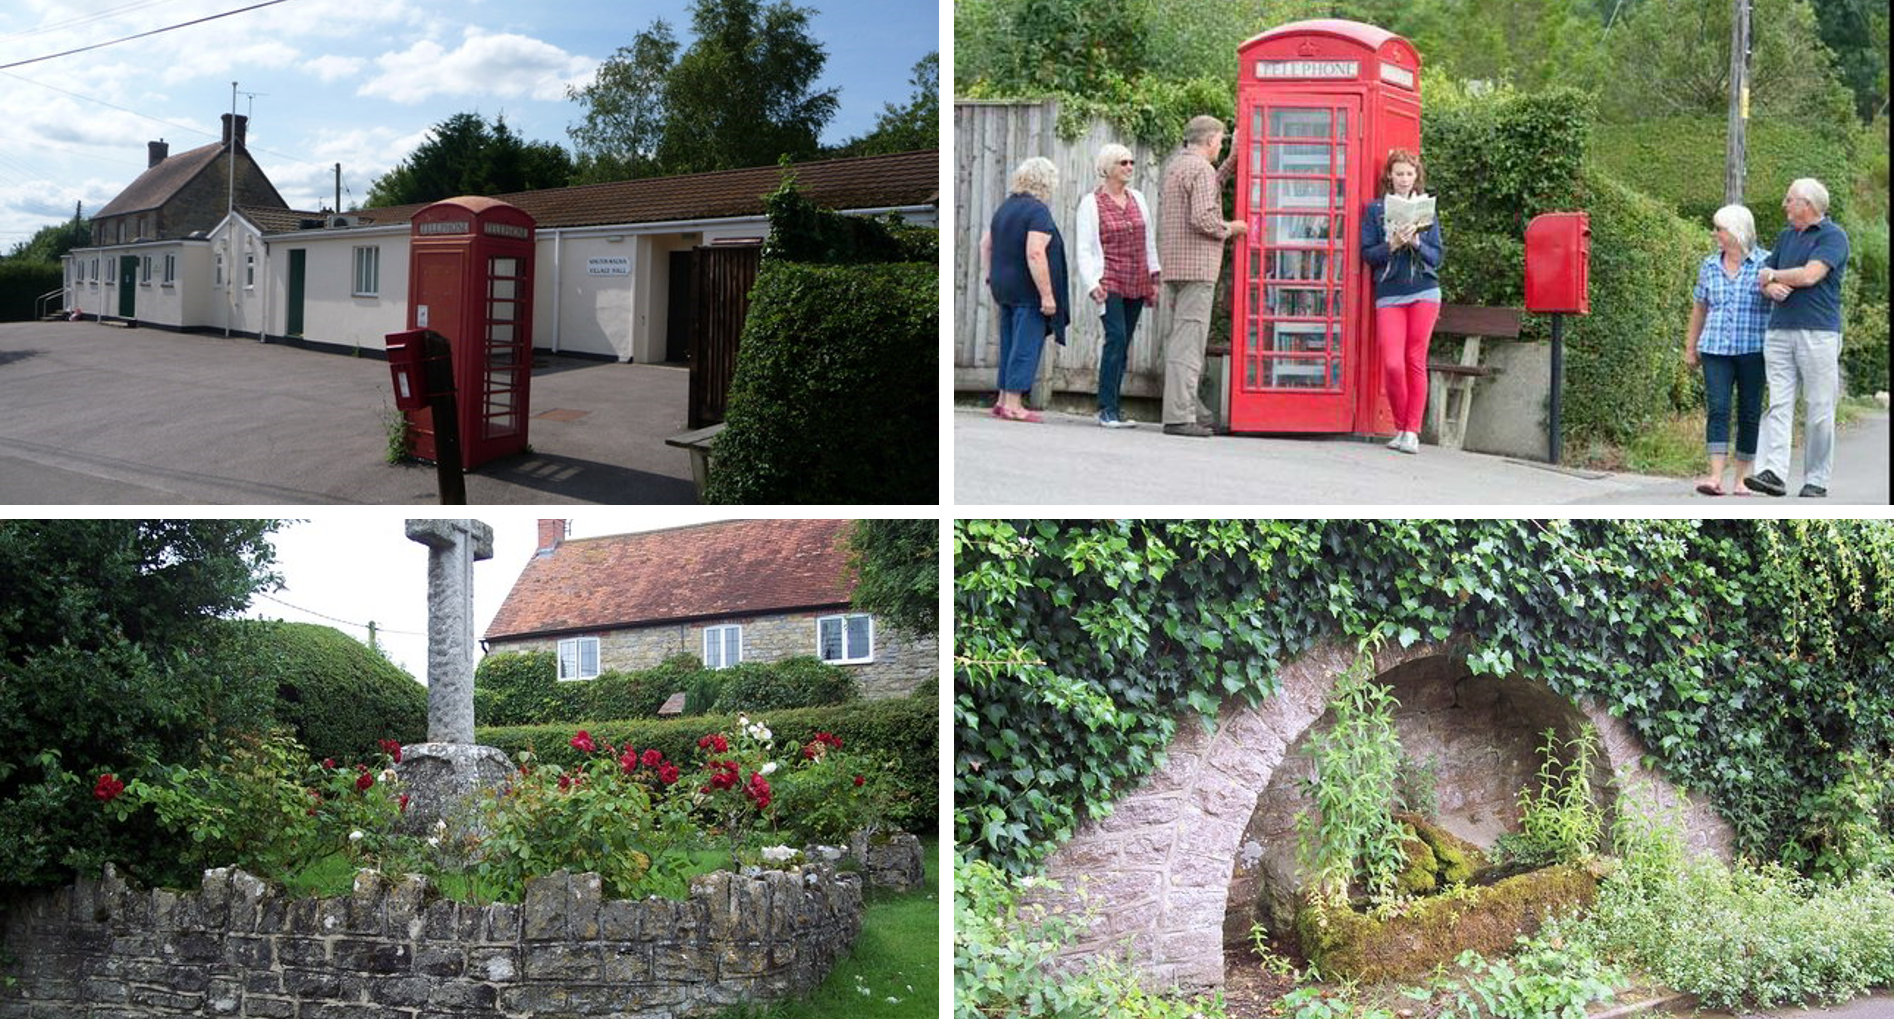 Four images of Kington Magna. Top left shows a view of the village hall and phone box library. Top right shows another view of the phone box library. Bottom left shows a view of the war memorial and gardens. Bottom right shows a view of the horse trough.